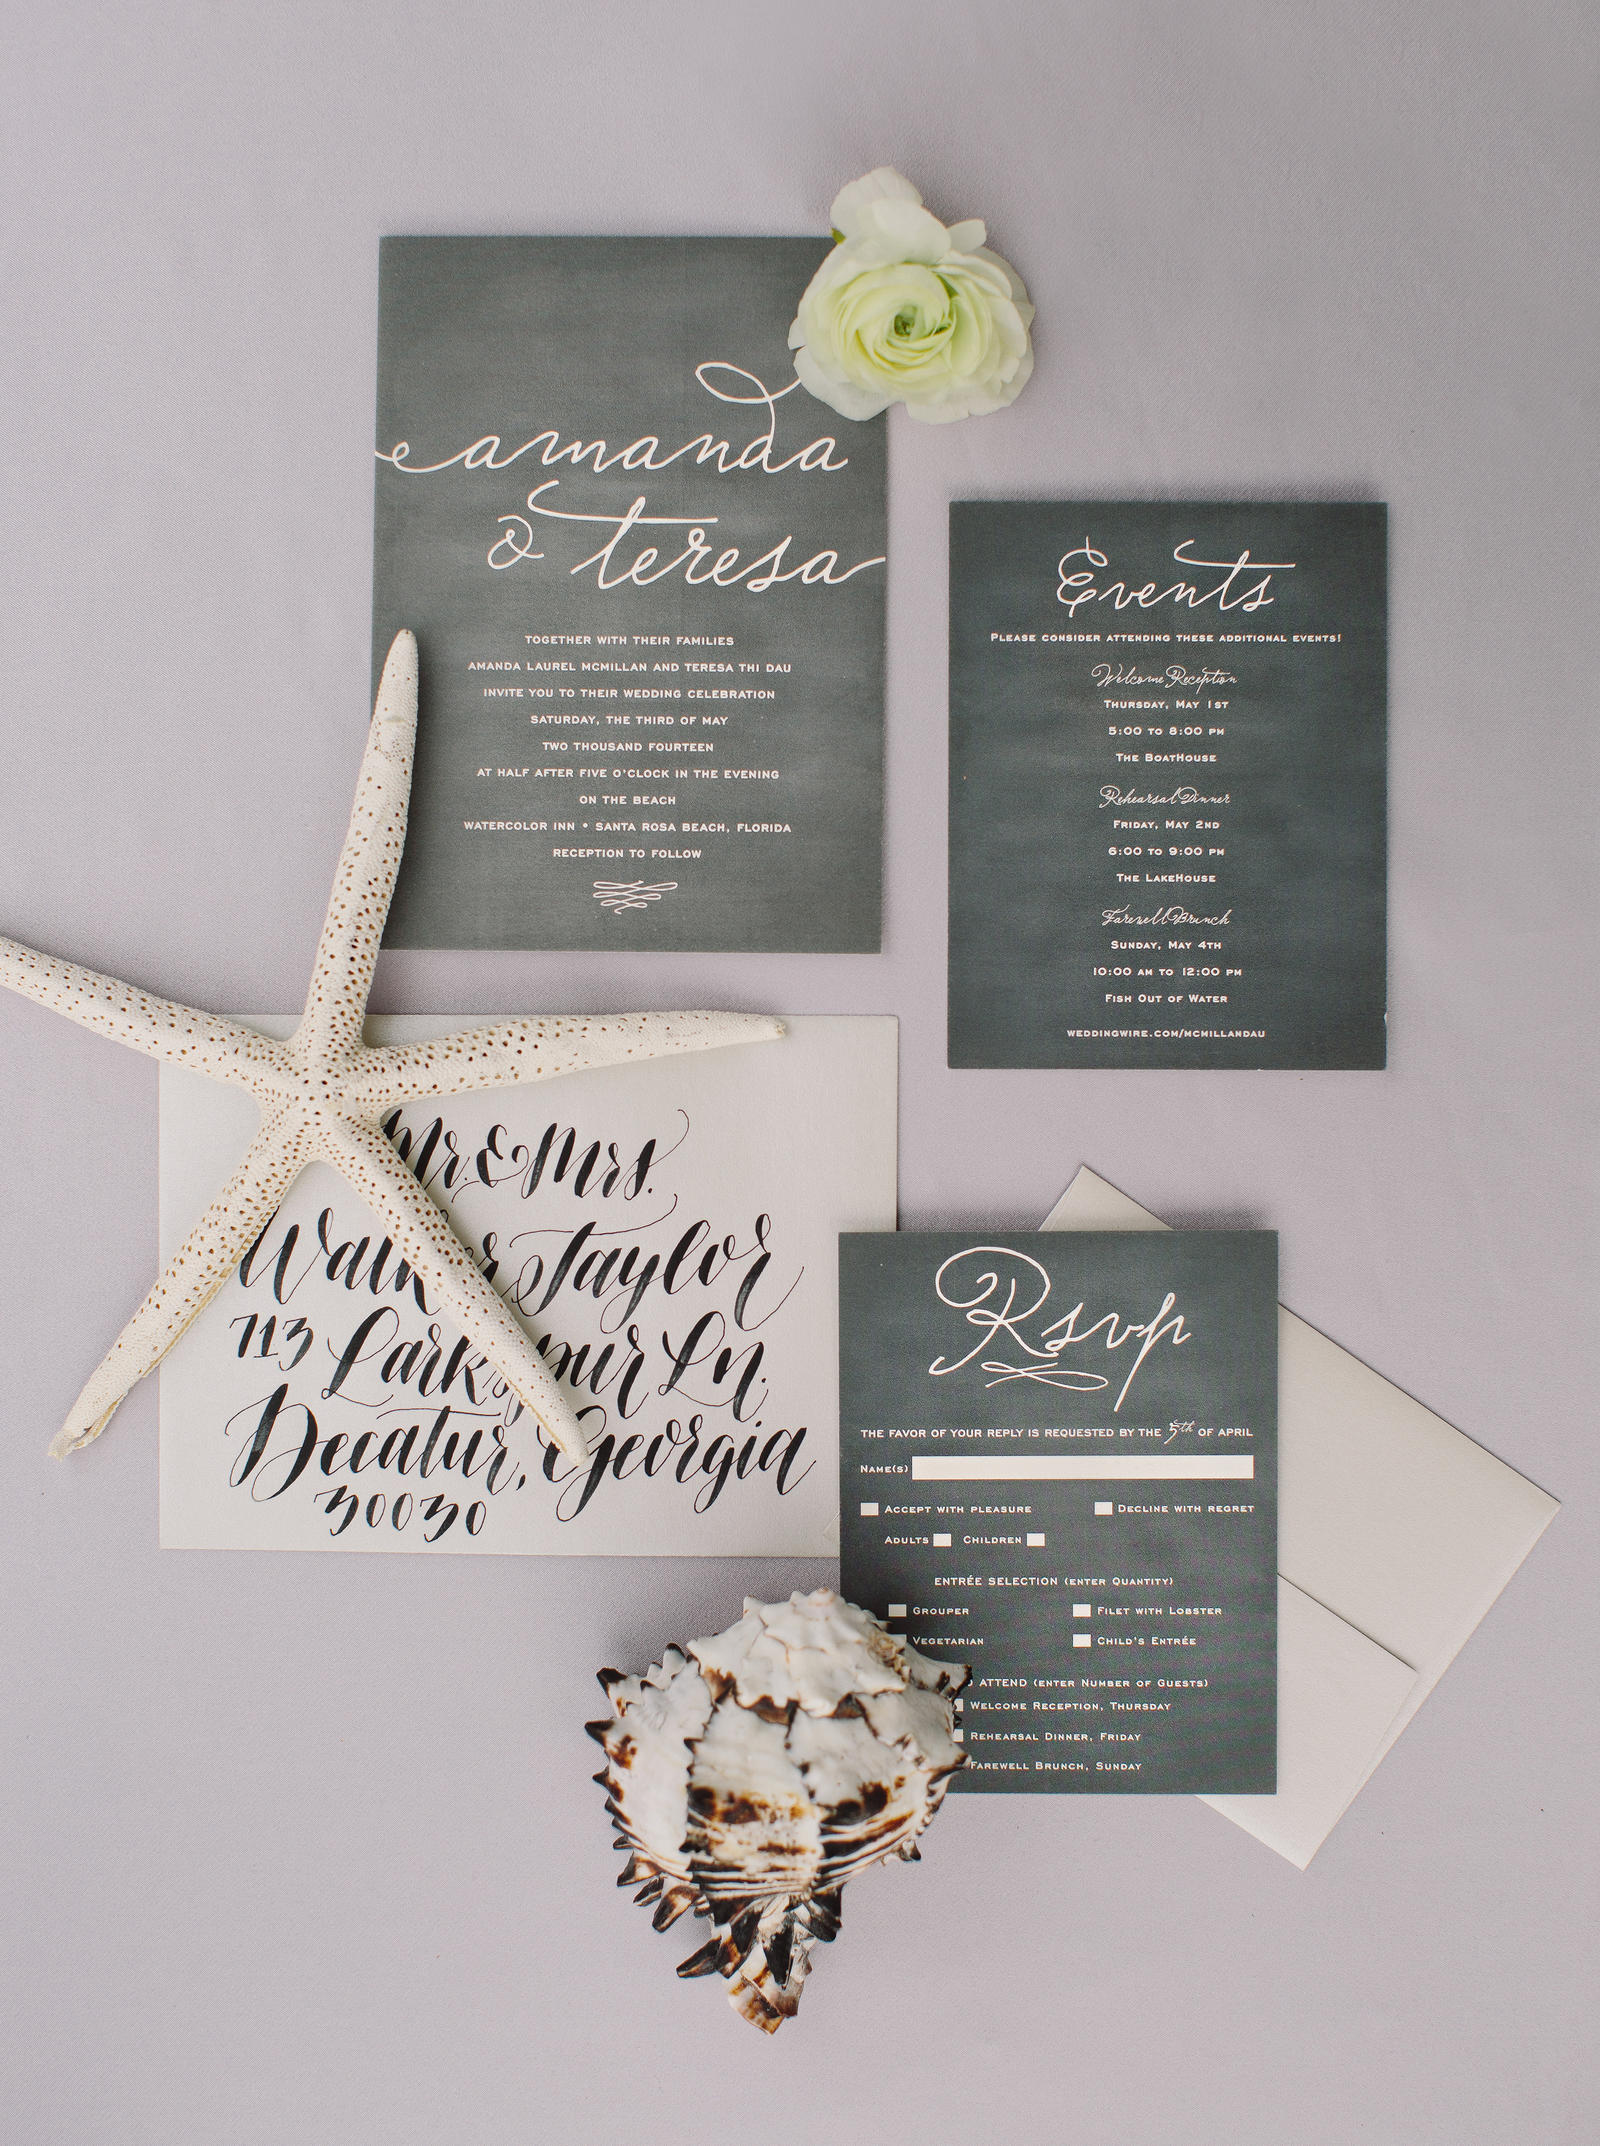 Wedding Photography | A picture of the wedding invitation set.